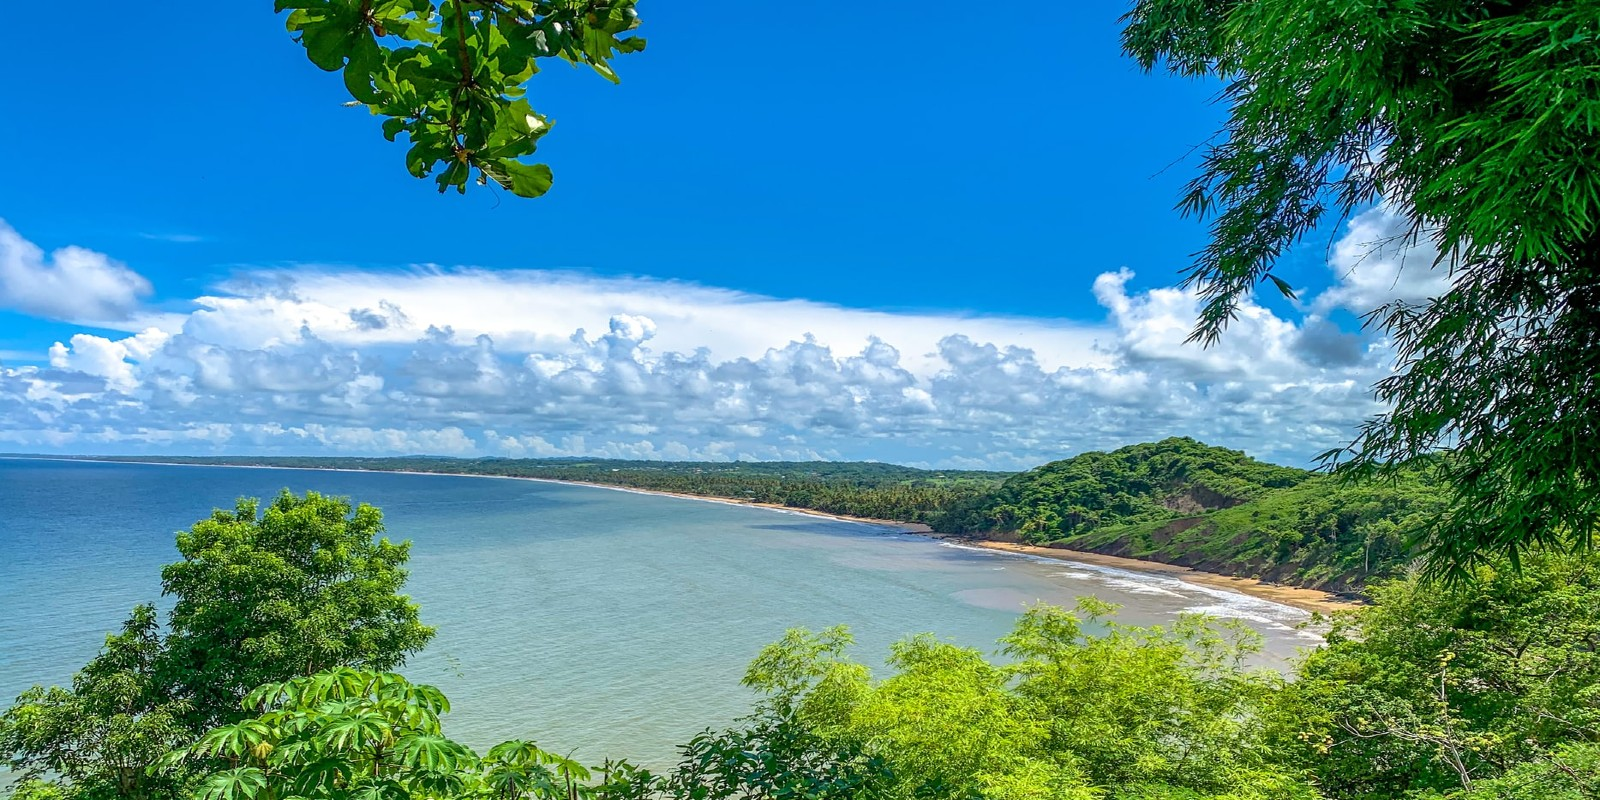 Travel blog: Our Definitive Top 10 Places To Visit in Trinidad & Tobago